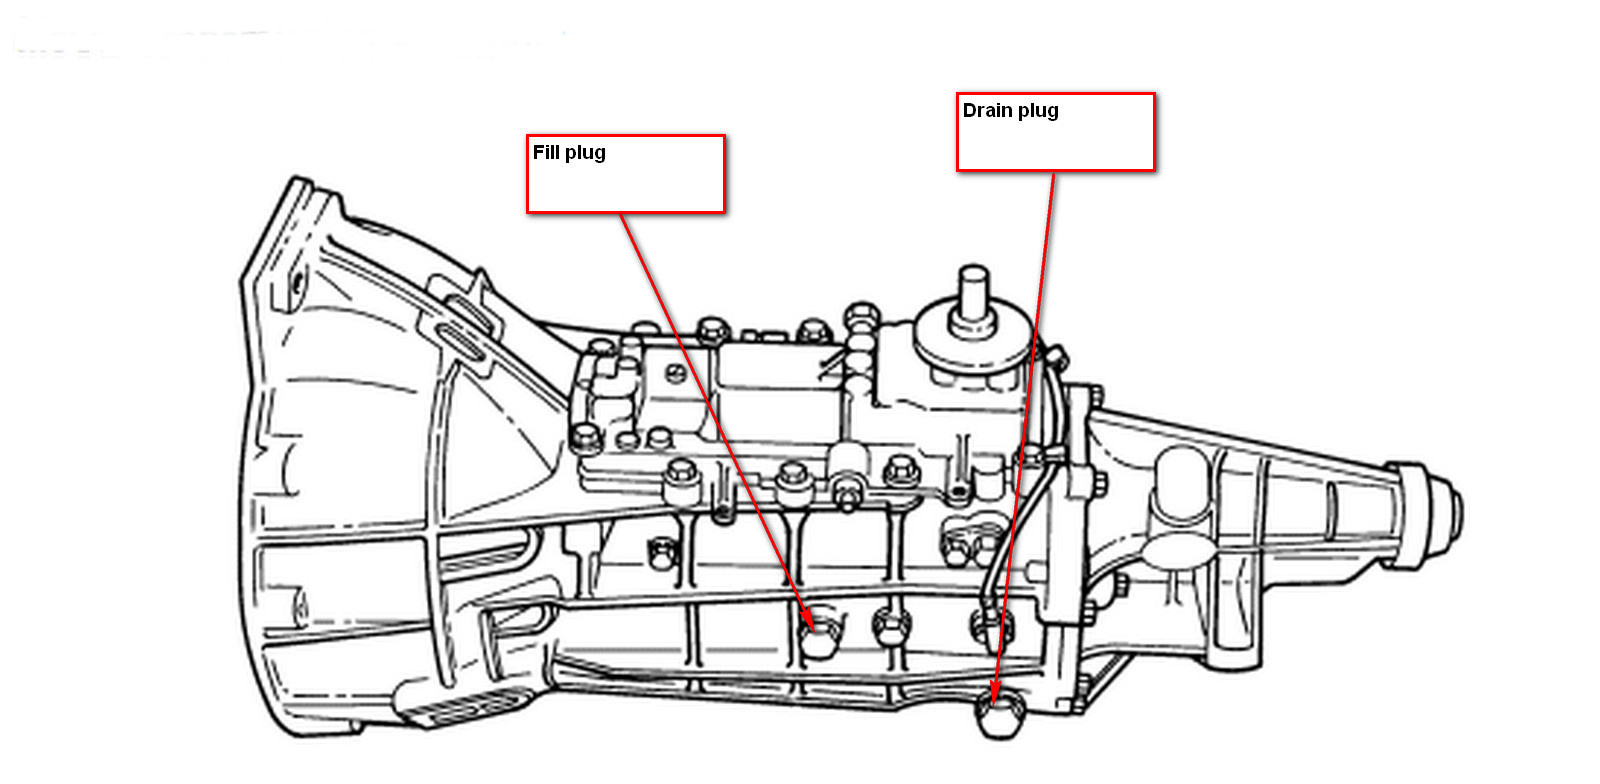 hight resolution of 2002 ford ranger transmission diagram wiring diagram info 2002 ford ranger transmission diagram 2002 ford ranger transmission diagram